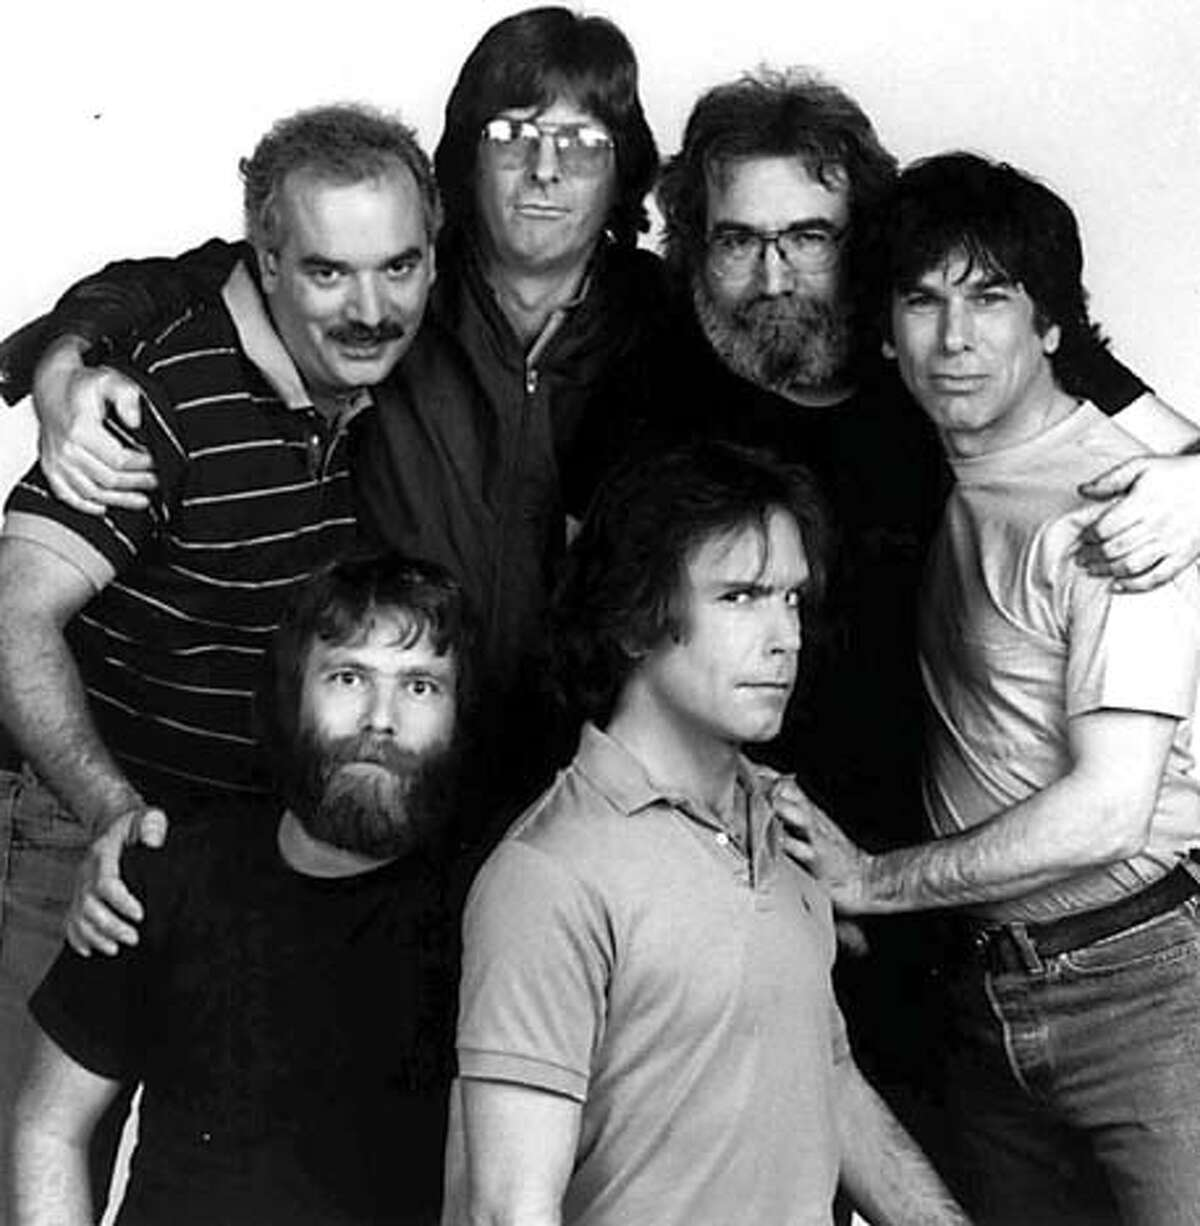 The Grateful Dead in 1985 (clockwise from top left): Billy Kreutzmann, Phil Lesh, Jerry Garcia, Mickey Hart, Bob Weir and Brent Mydland. Kreutzmann, Lesh, Hart and Weir are together again. Associated Press File Photo